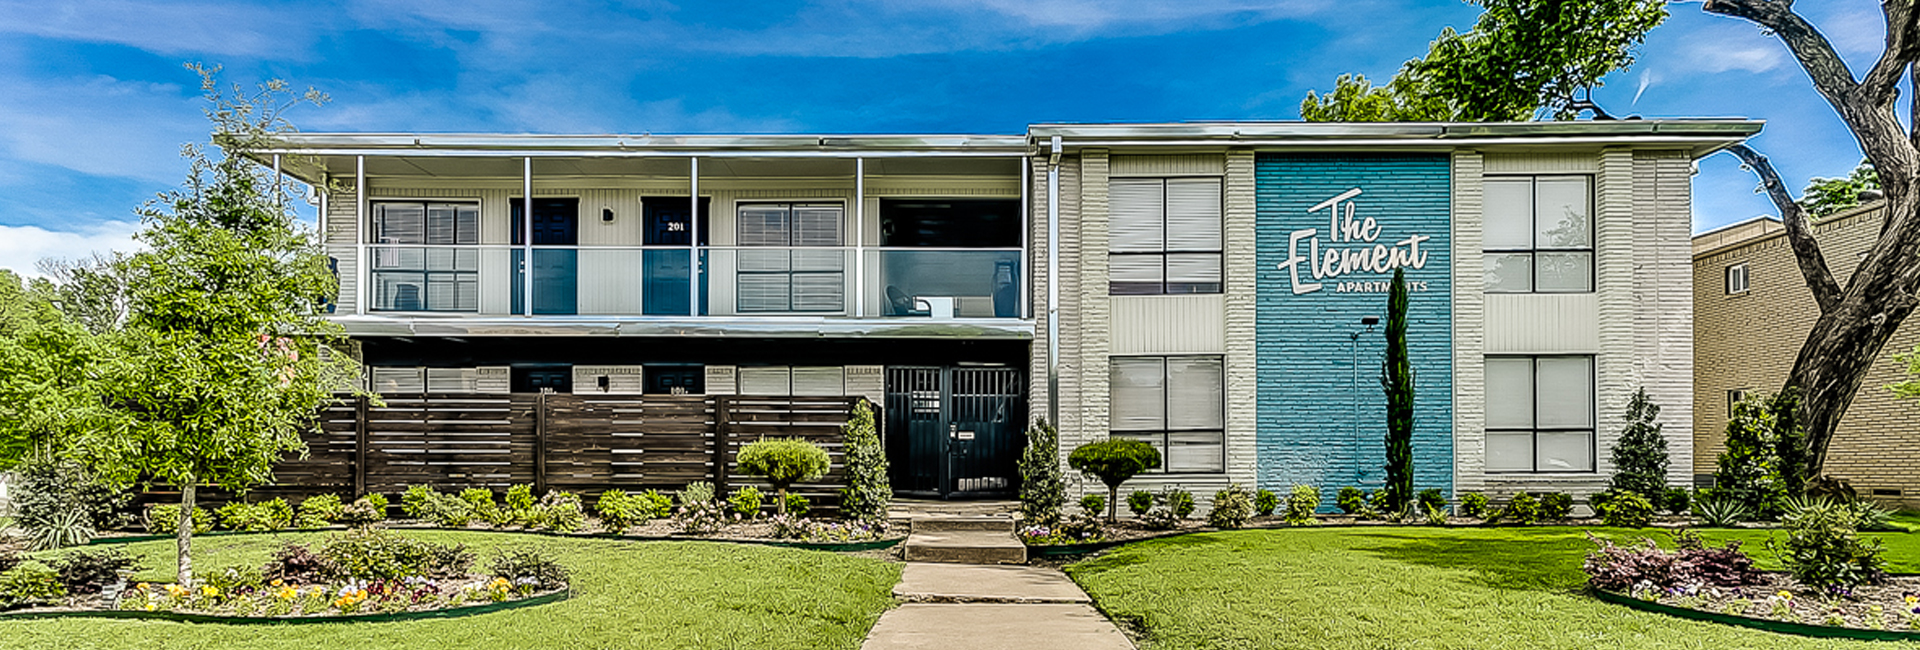 5124 Live Oak | Dallas, Texas